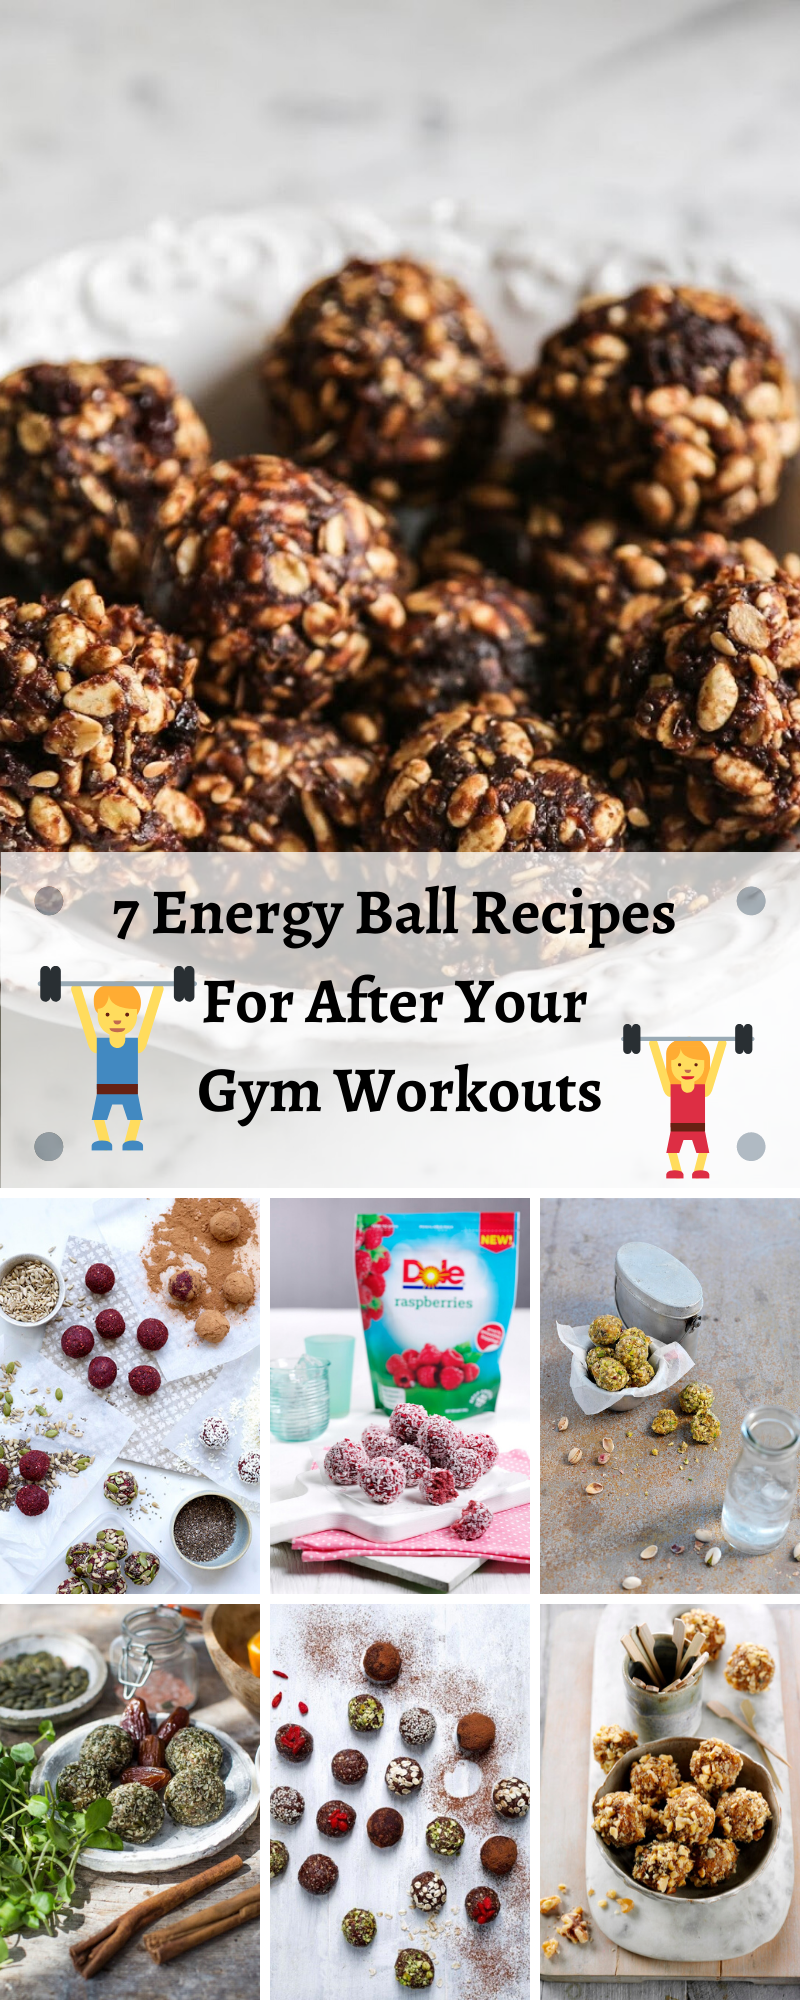 7 Energy Ball Recipes For After Your Gym Workouts